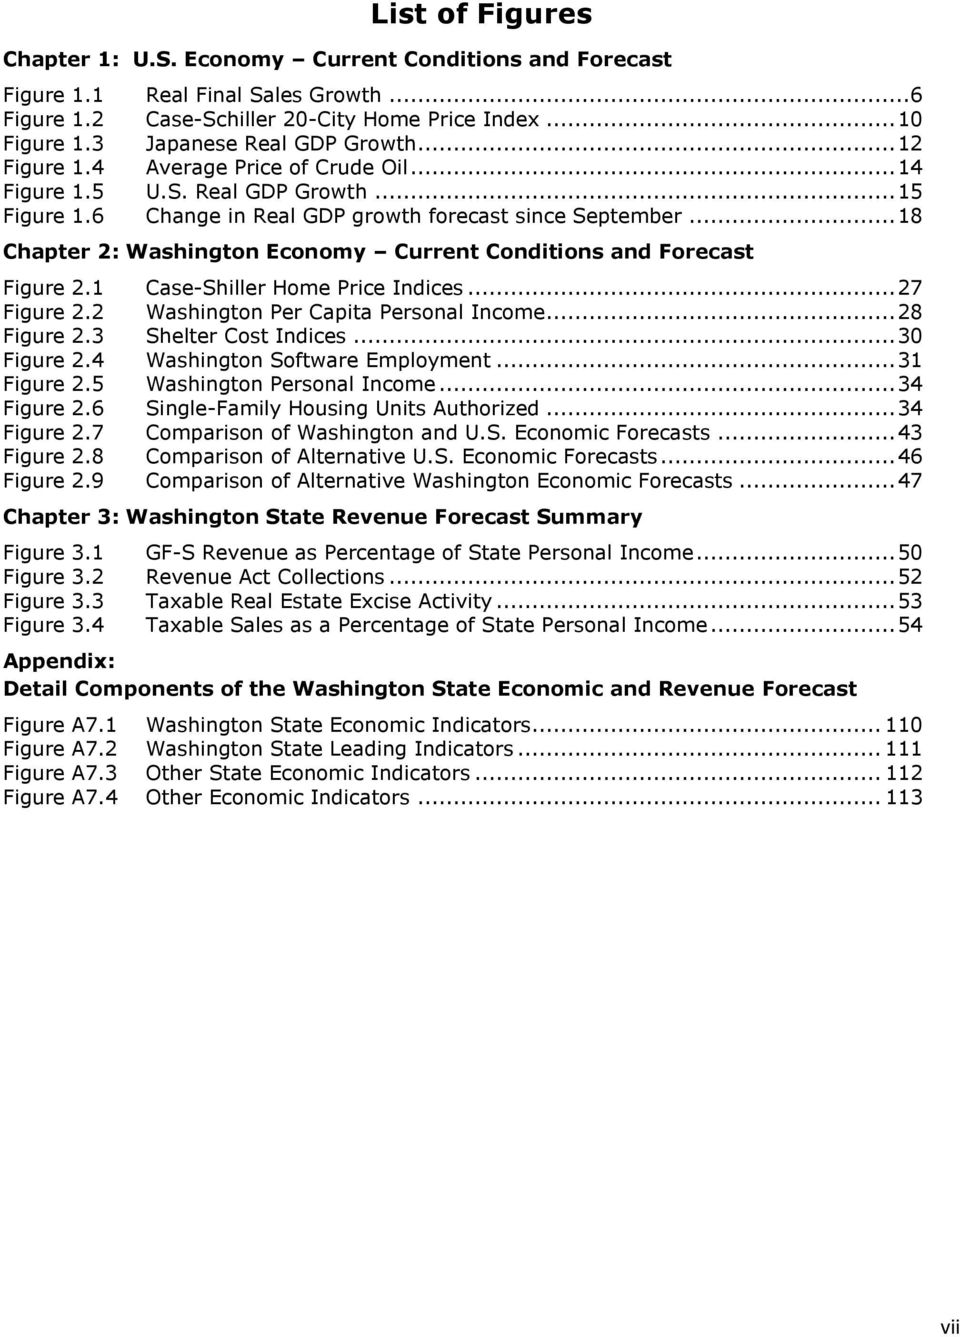 .. 18 Chapter 2: Washington Economy Current Conditions and Forecast Figure 2.1 Case-Shiller Home Price Indices... 27 Figure 2.2 Washington Per Capita Personal Income... 28 Figure 2.